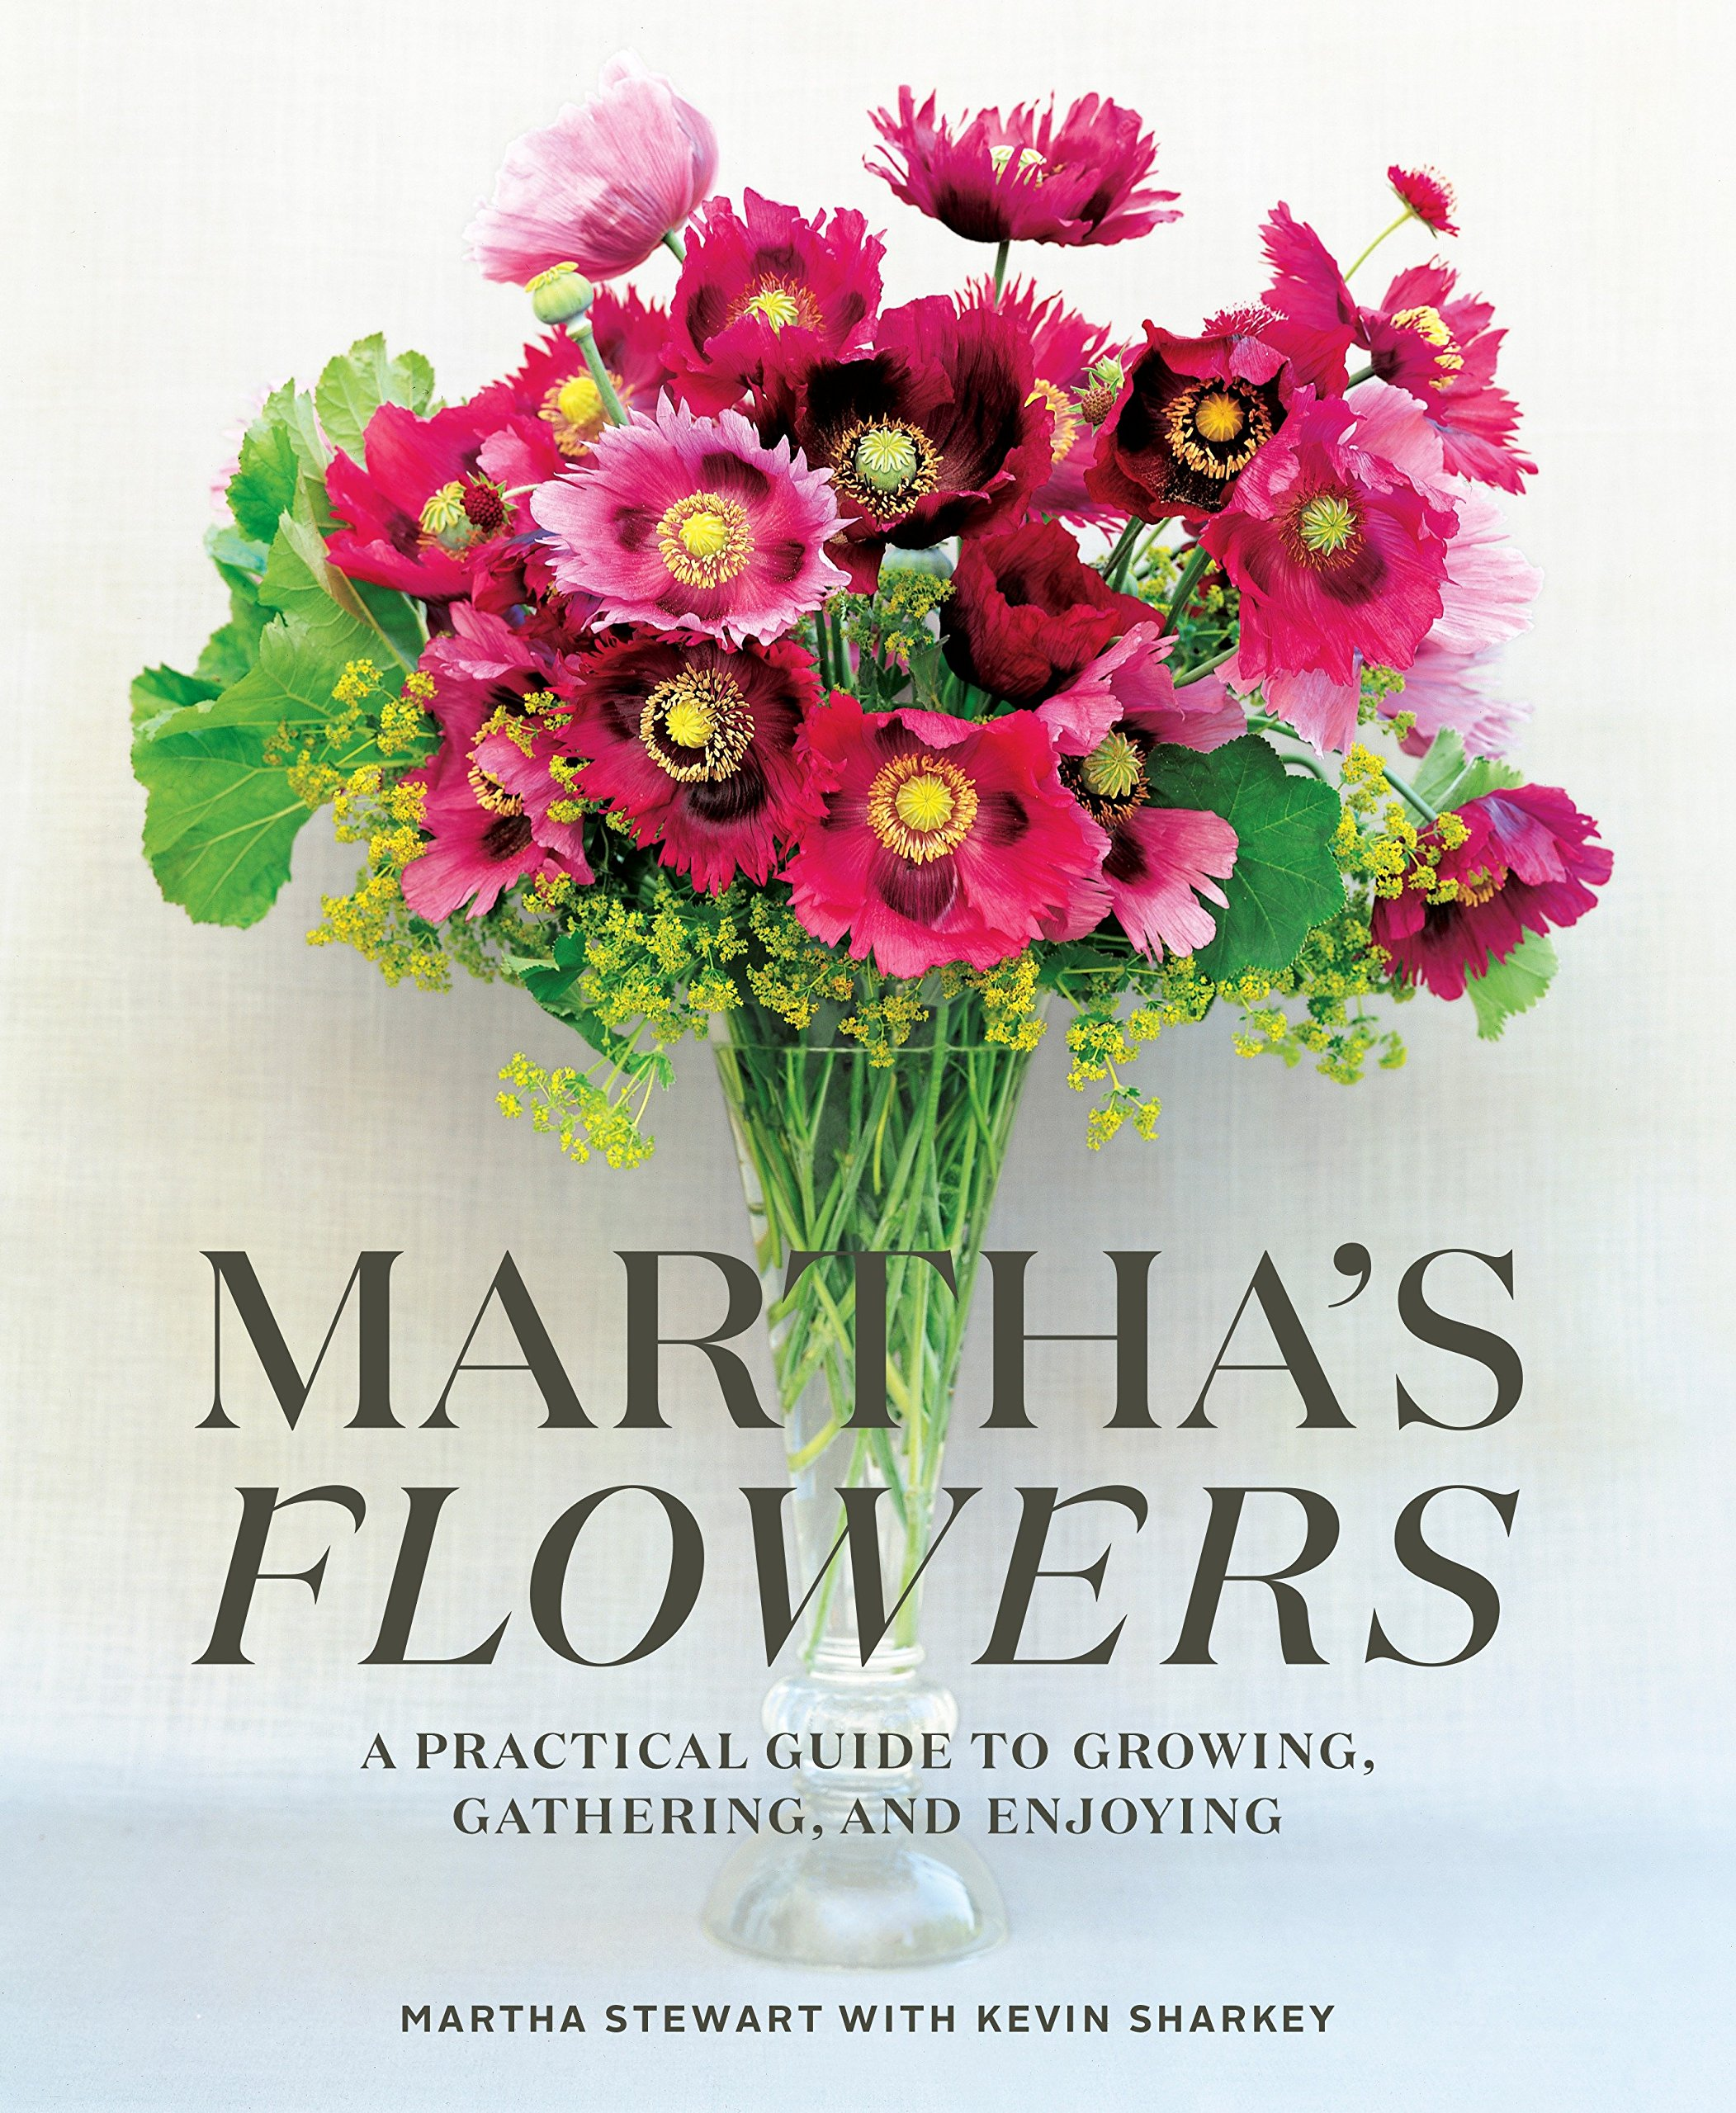 Marthas Flowers A Practical Guide To Growing Gathering And